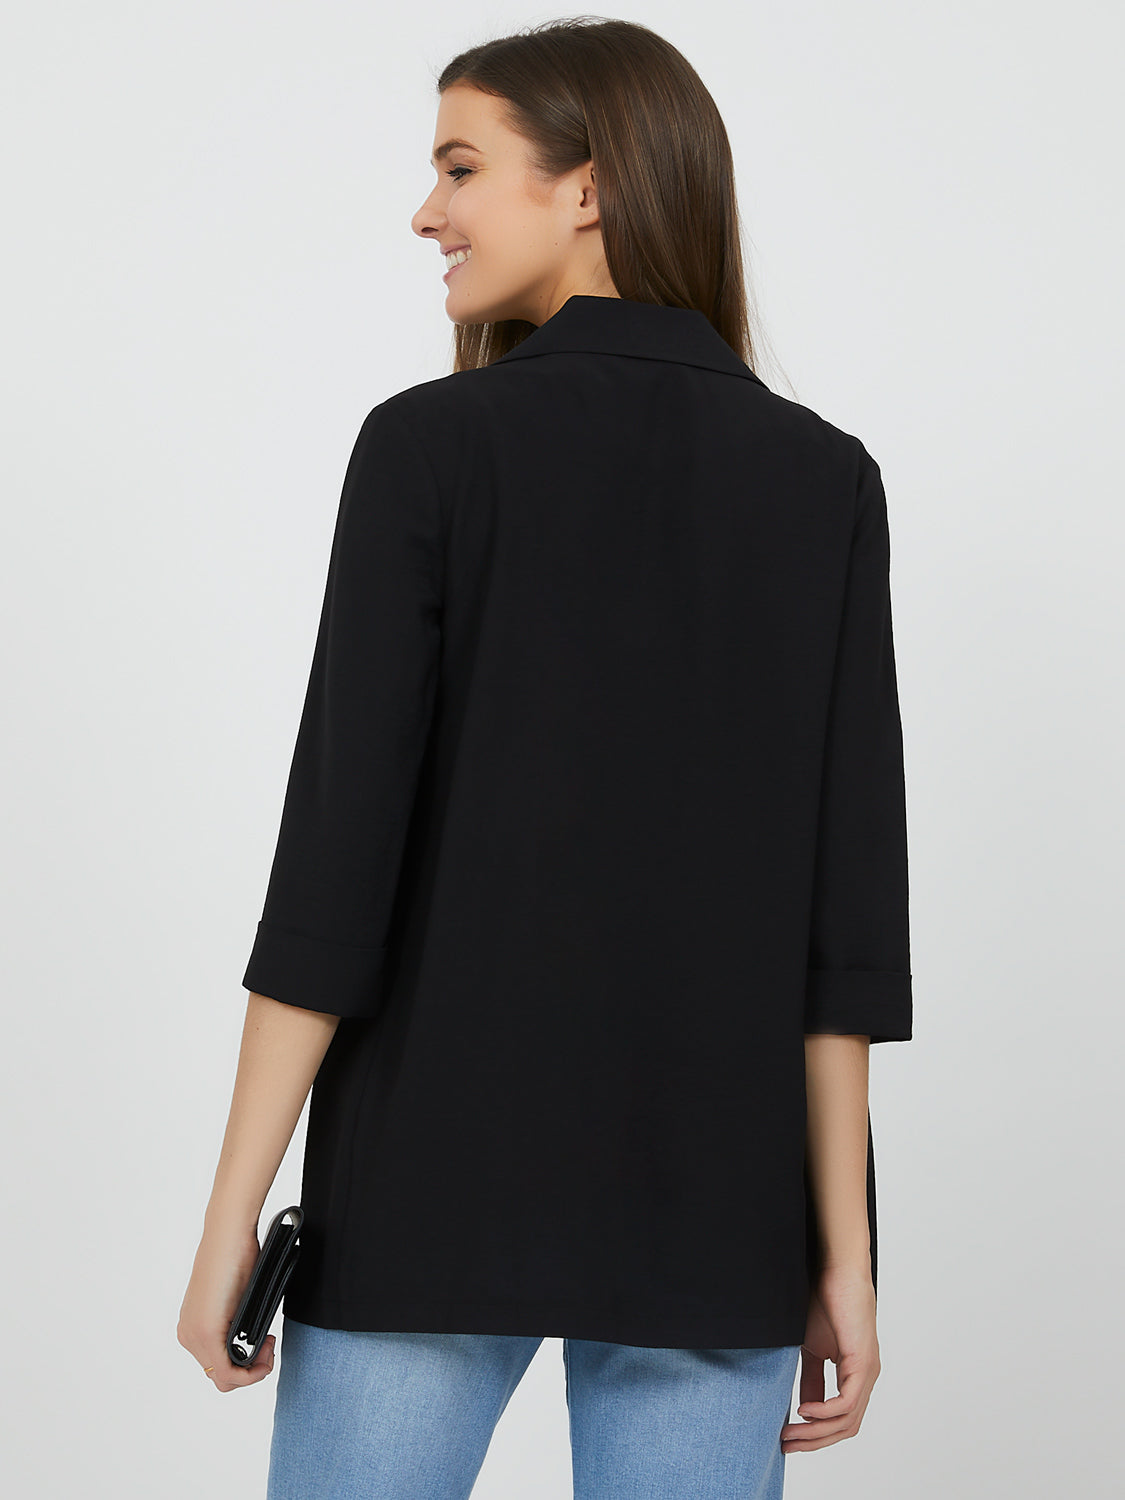 Elongated ¾ Cuffed Sleeve Blazer